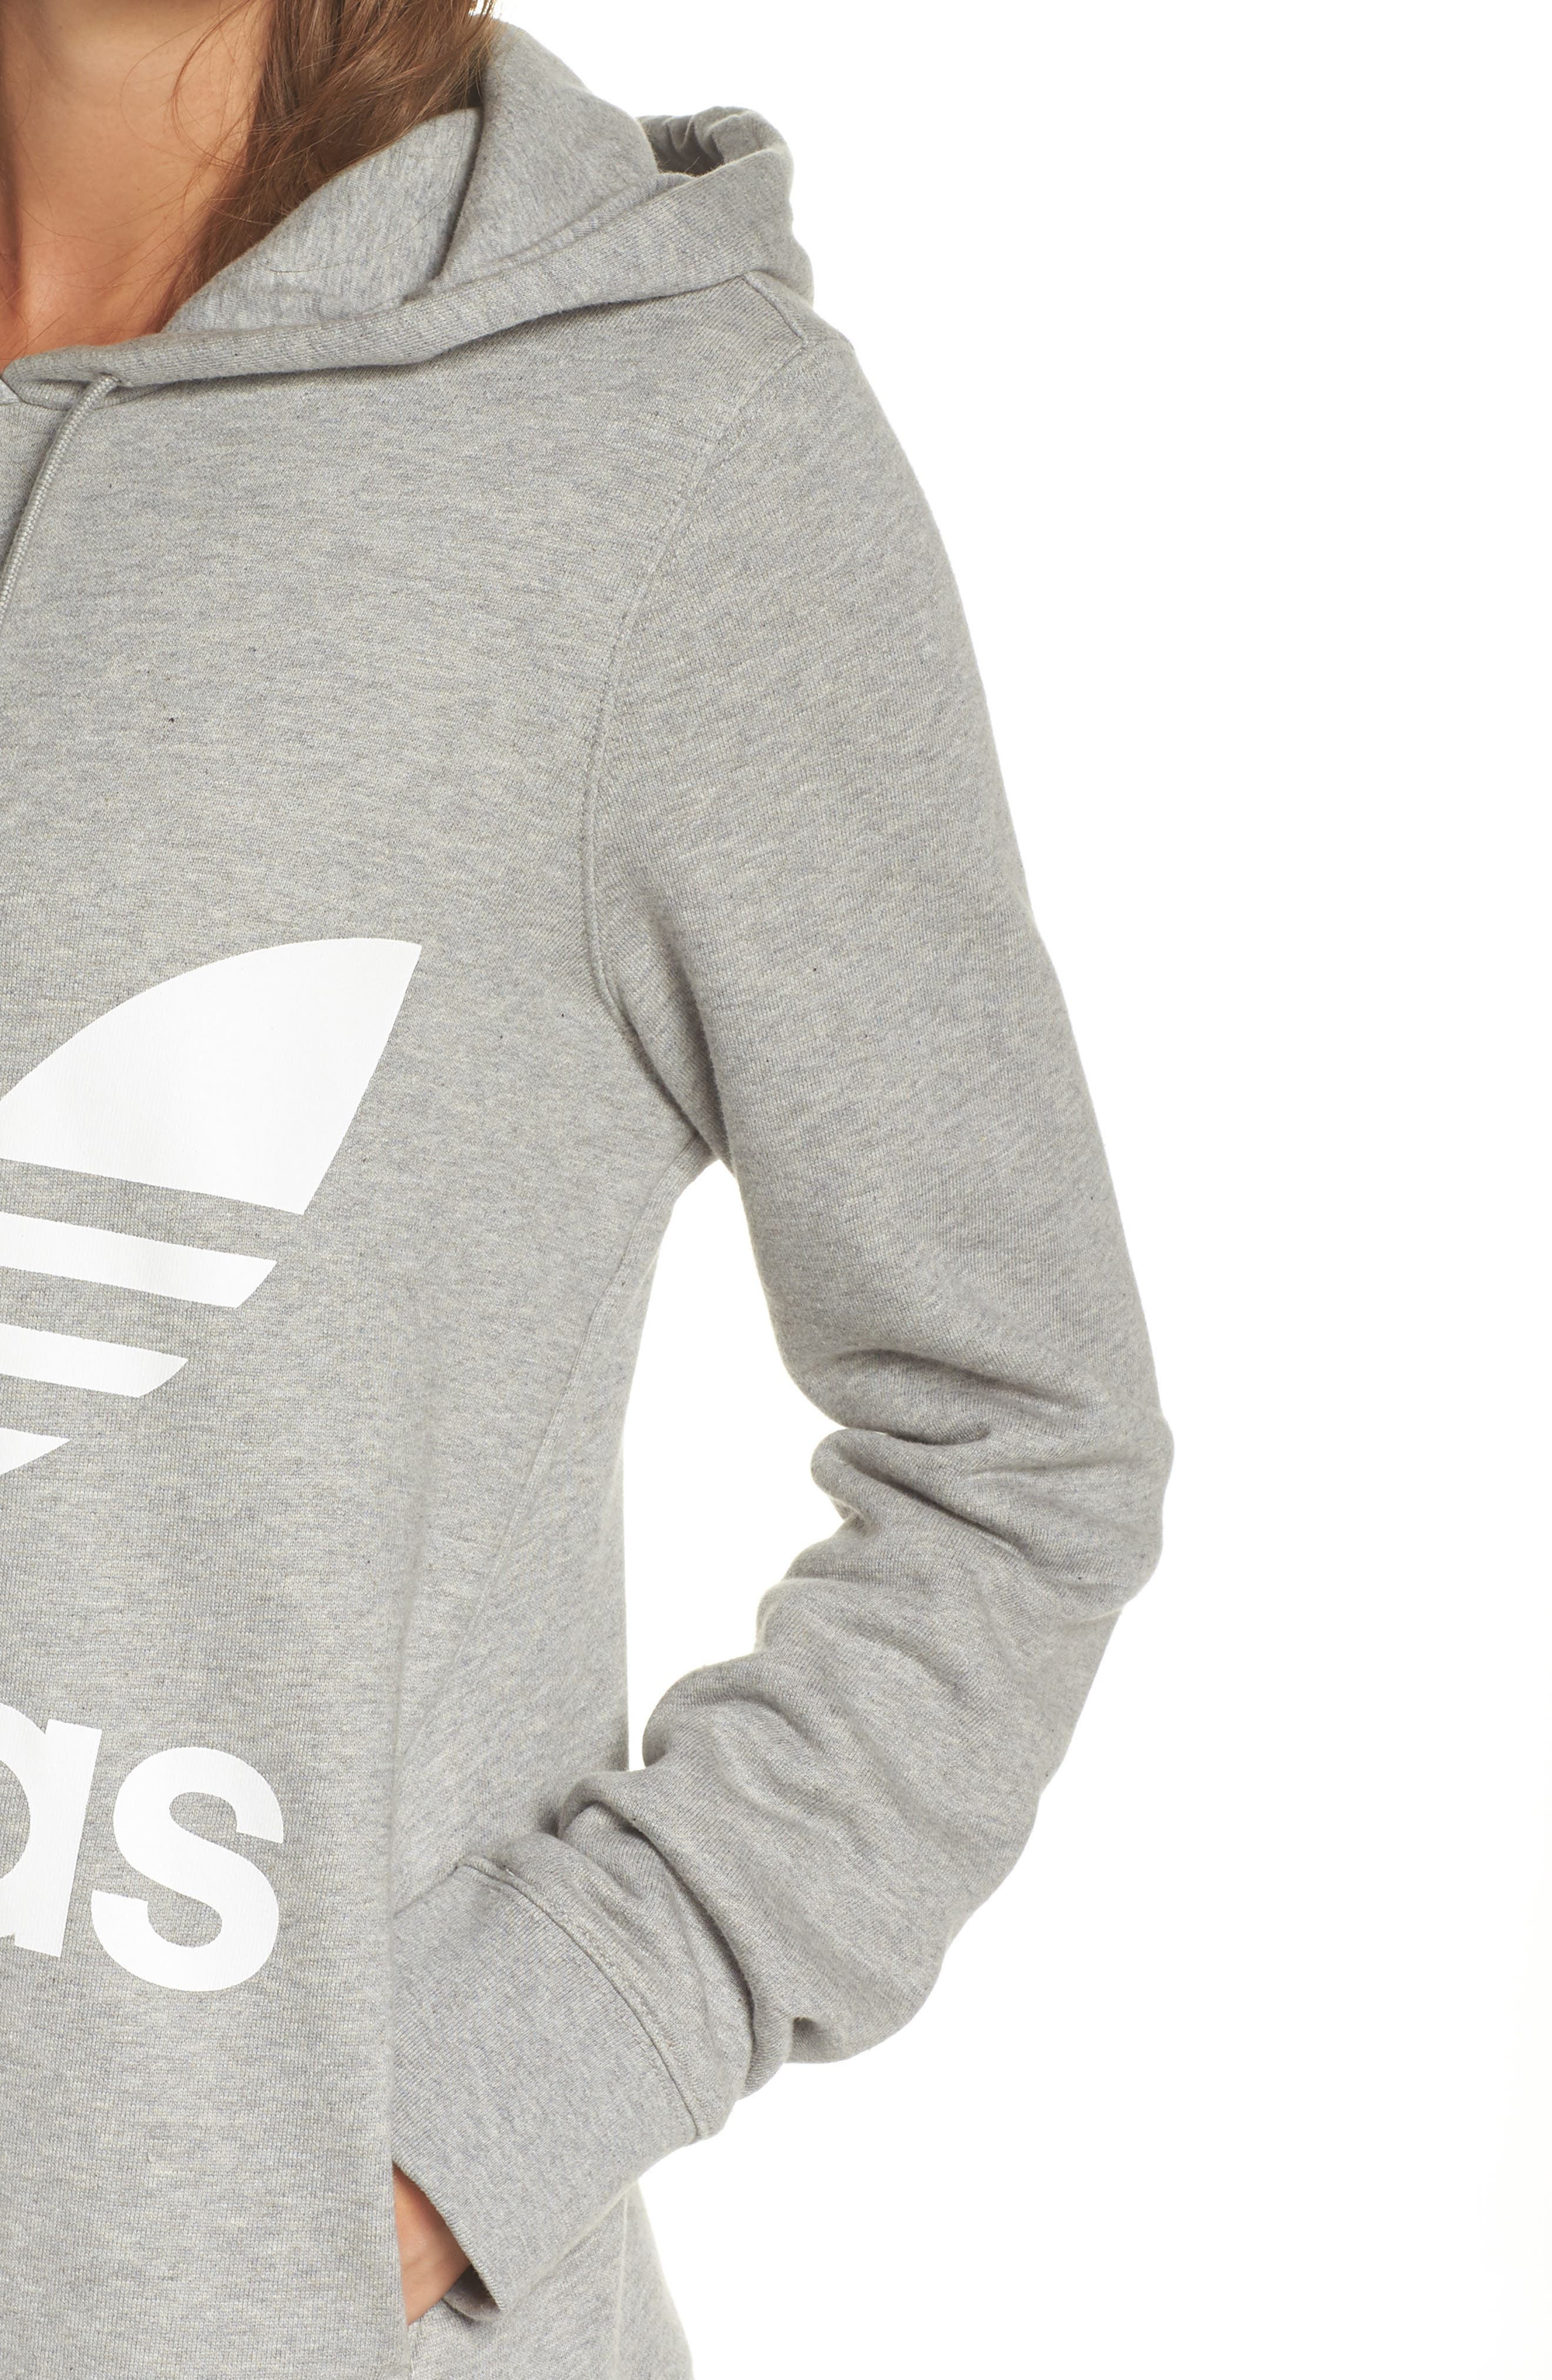 ADIDAS ORIGINALS, Trefoil Hoodie, Alternate thumbnail 5, color, MEDIUM GREY HEATHER